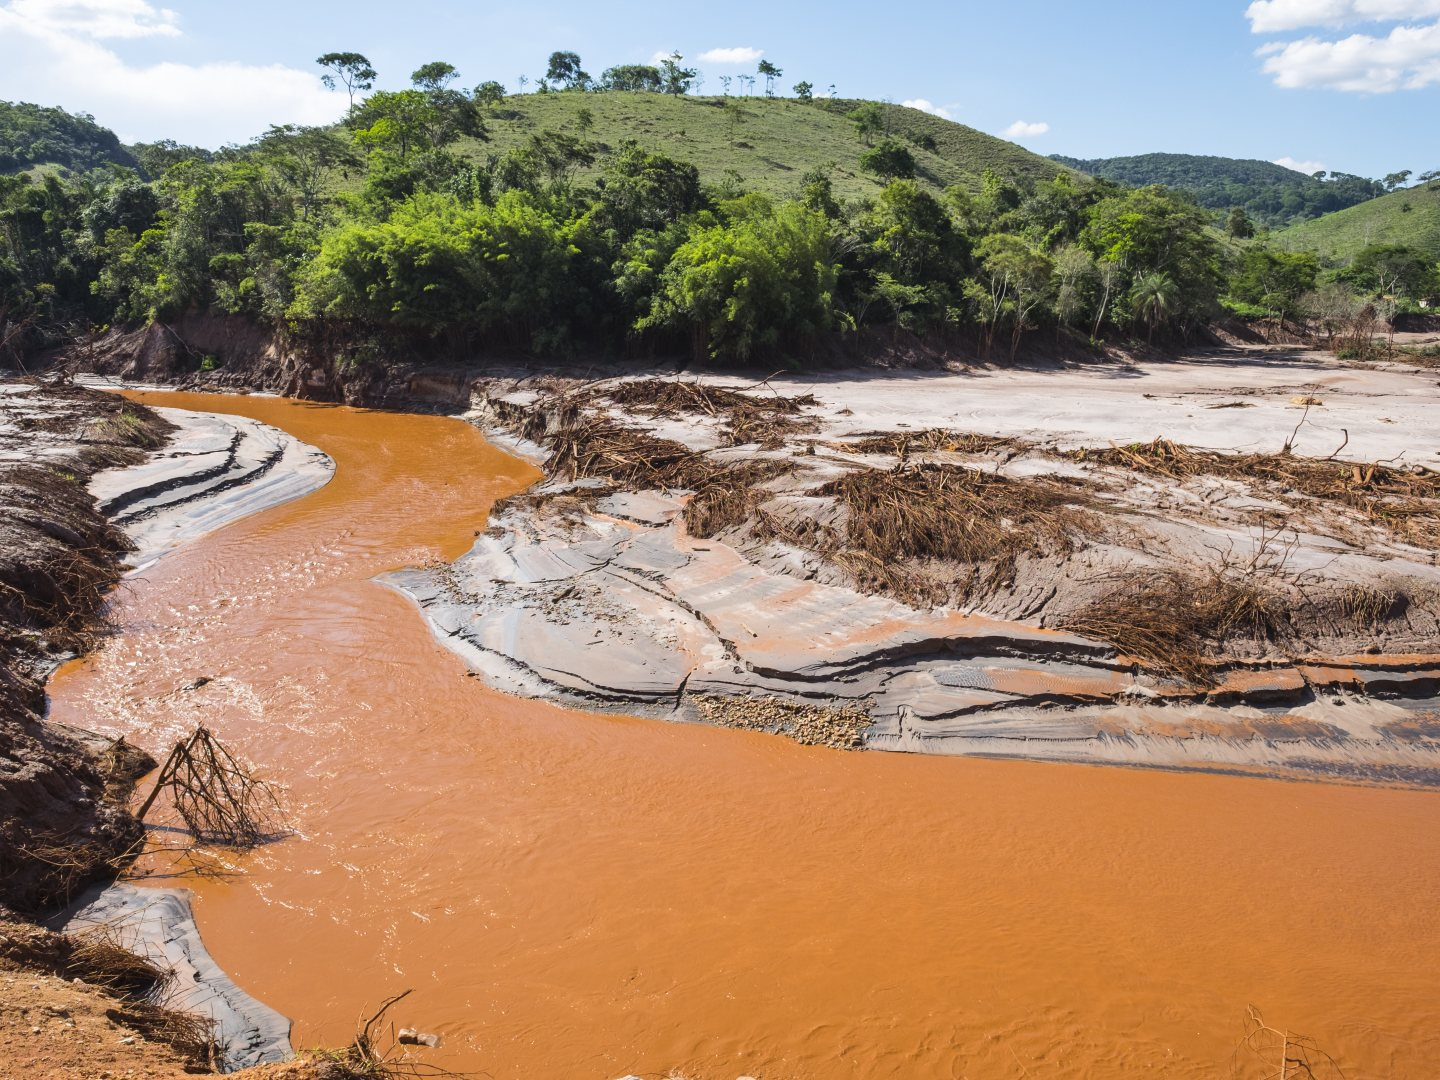 View of Gualaxo do Norte river destroyed due to the mud tsunami after the collapse of Samarco's Fundao mining dam.